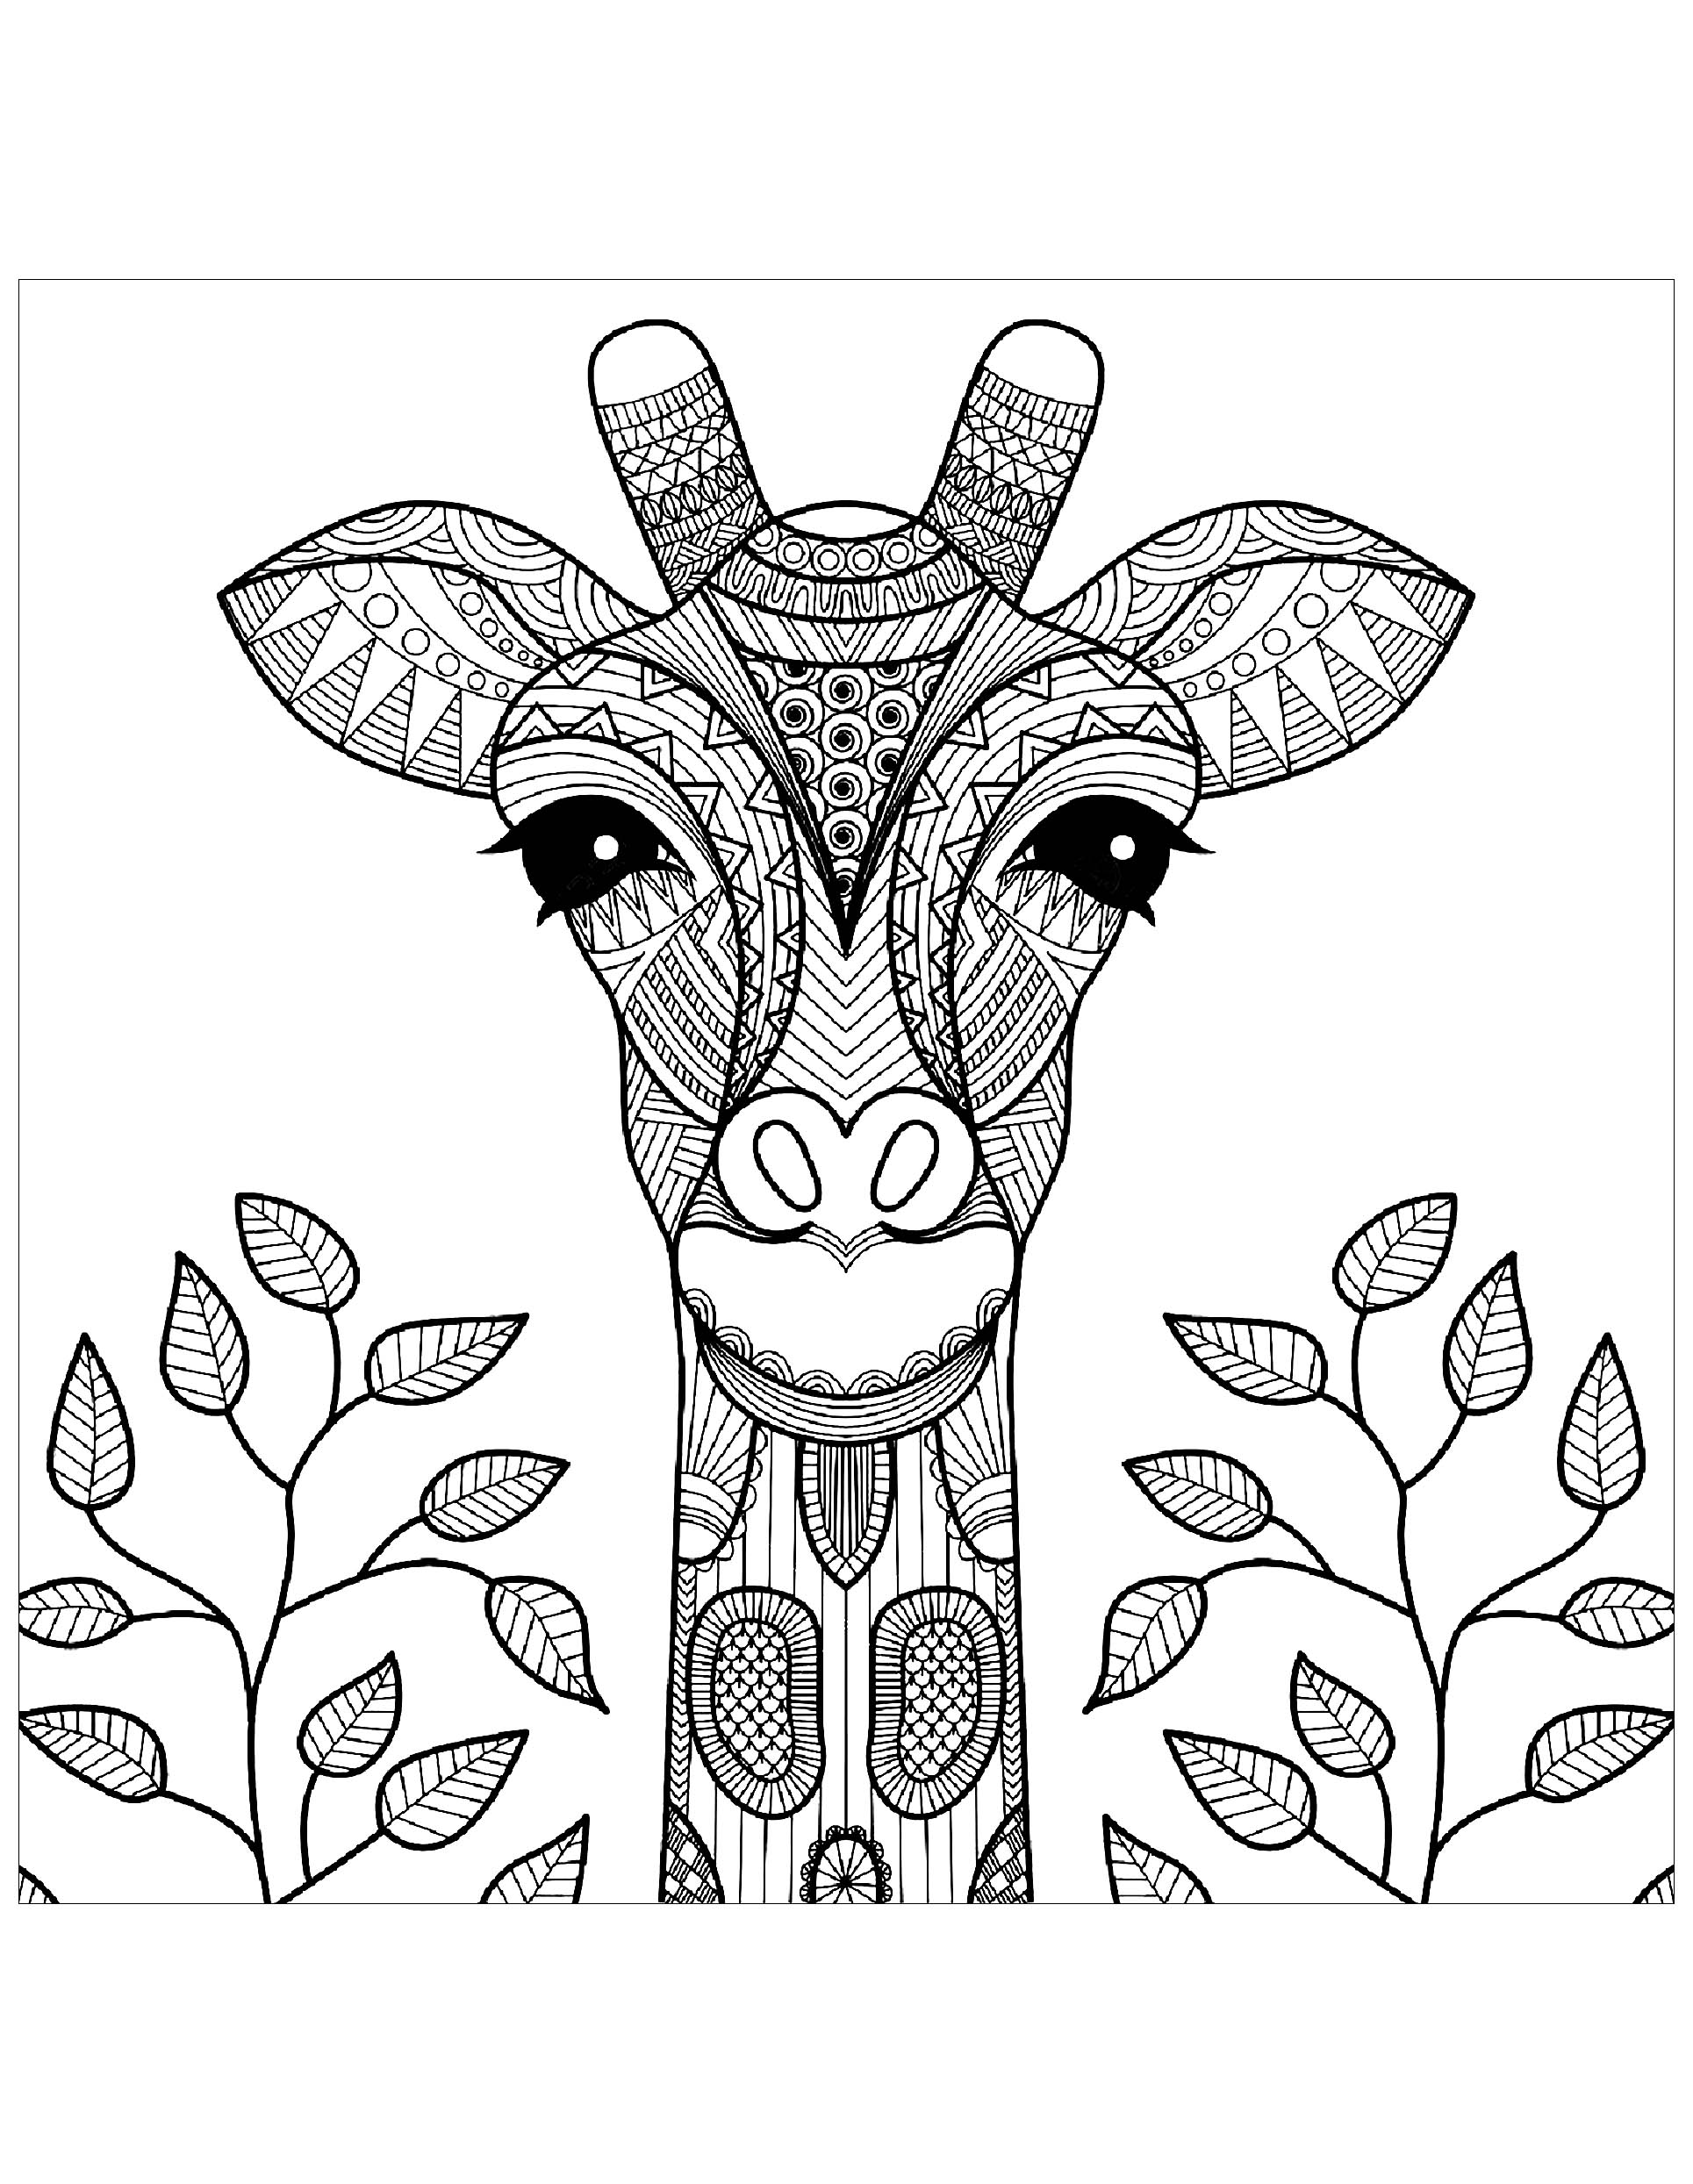 coloring pages giraffe giraffes for kids giraffes kids coloring pages pages giraffe coloring